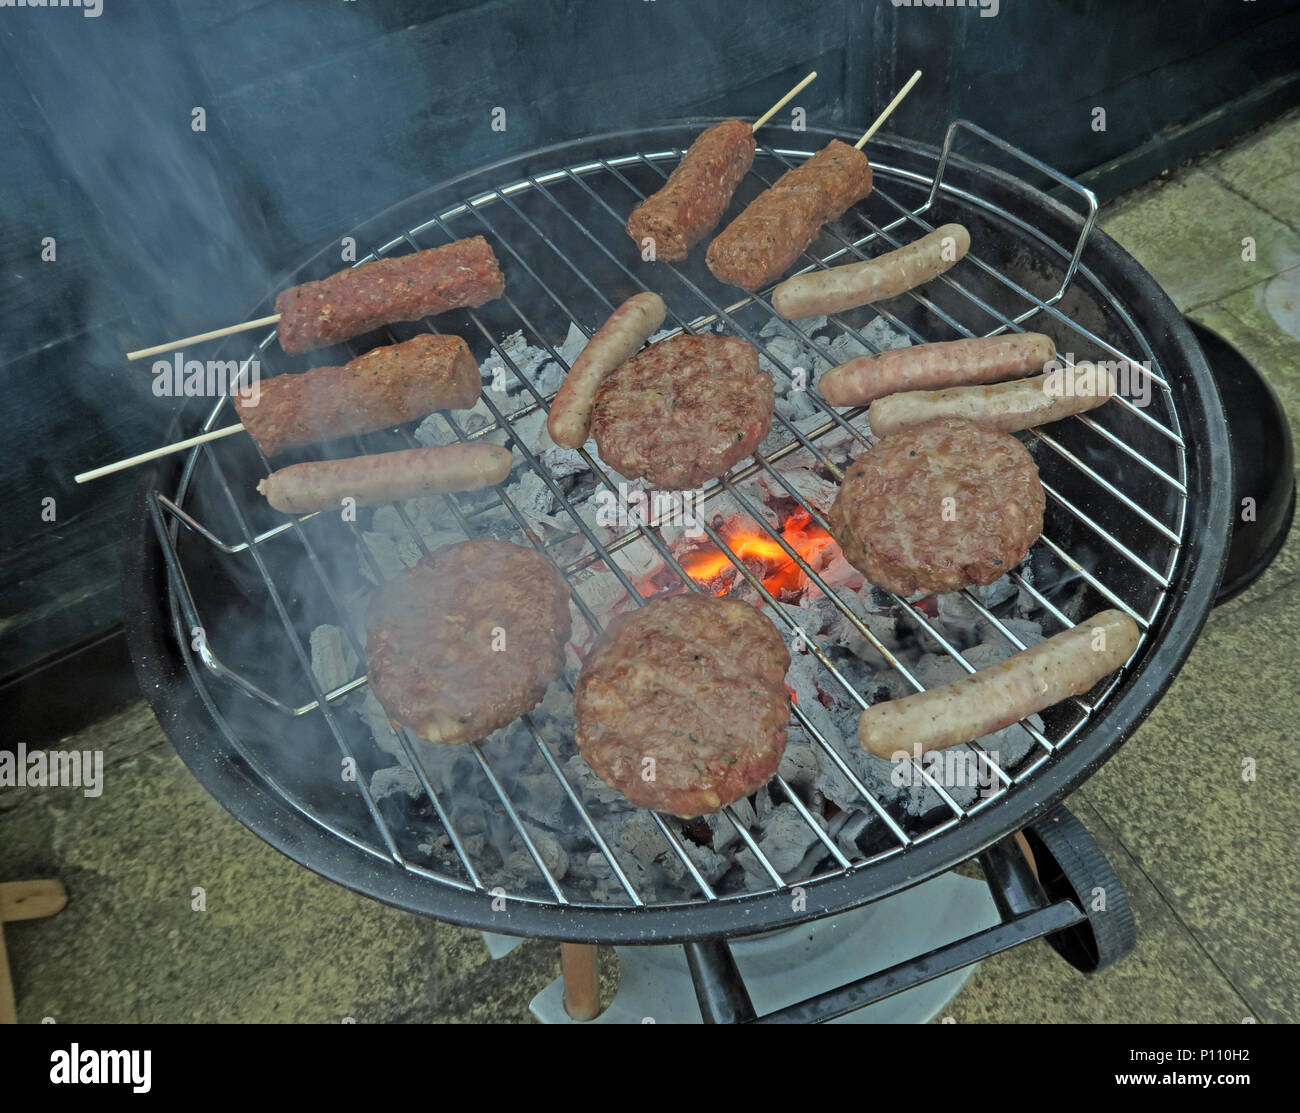 Well cooked BBQ meat on summer garden barbecue - Stock Image